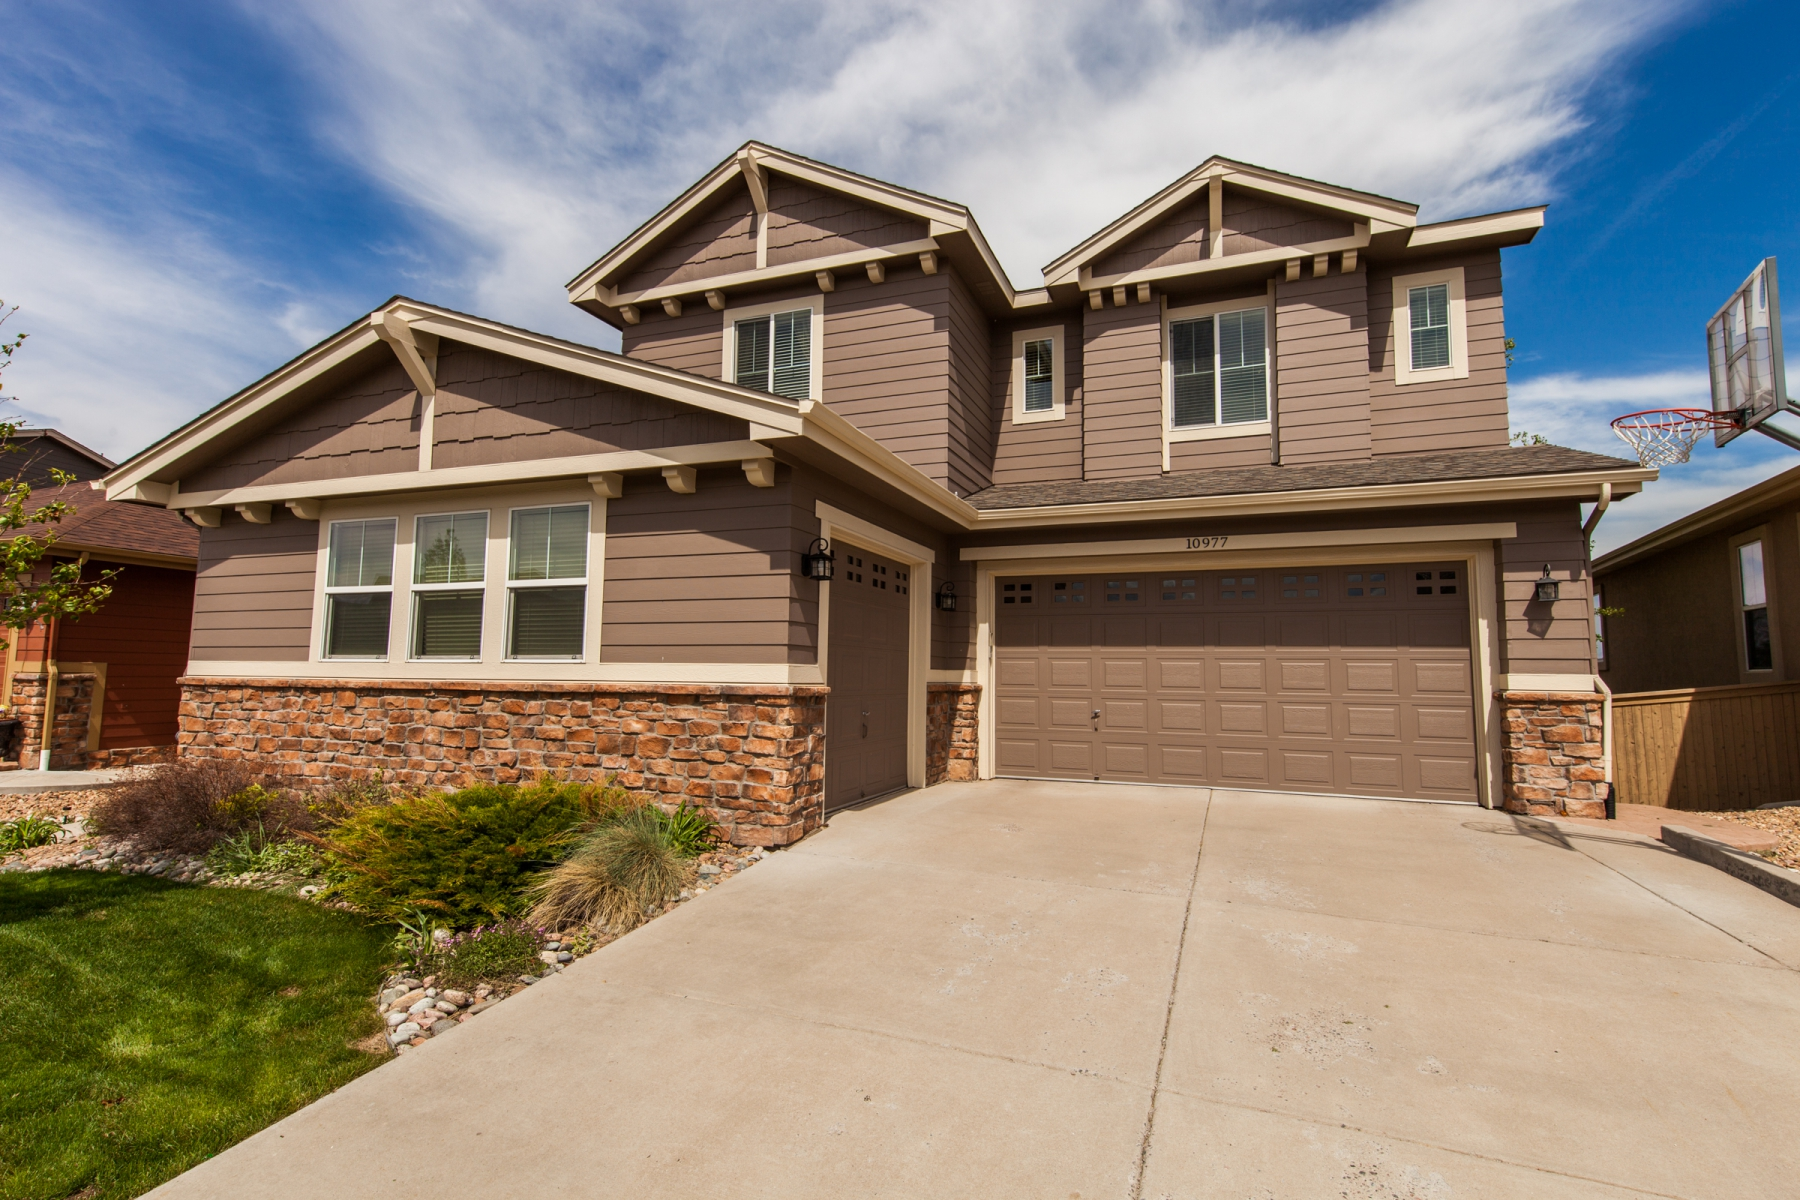 Single Family Home for Sale at Incredible open space opportunity in The Hearth 10977 Glengate Cir Highlands Ranch, Colorado 80130 United States